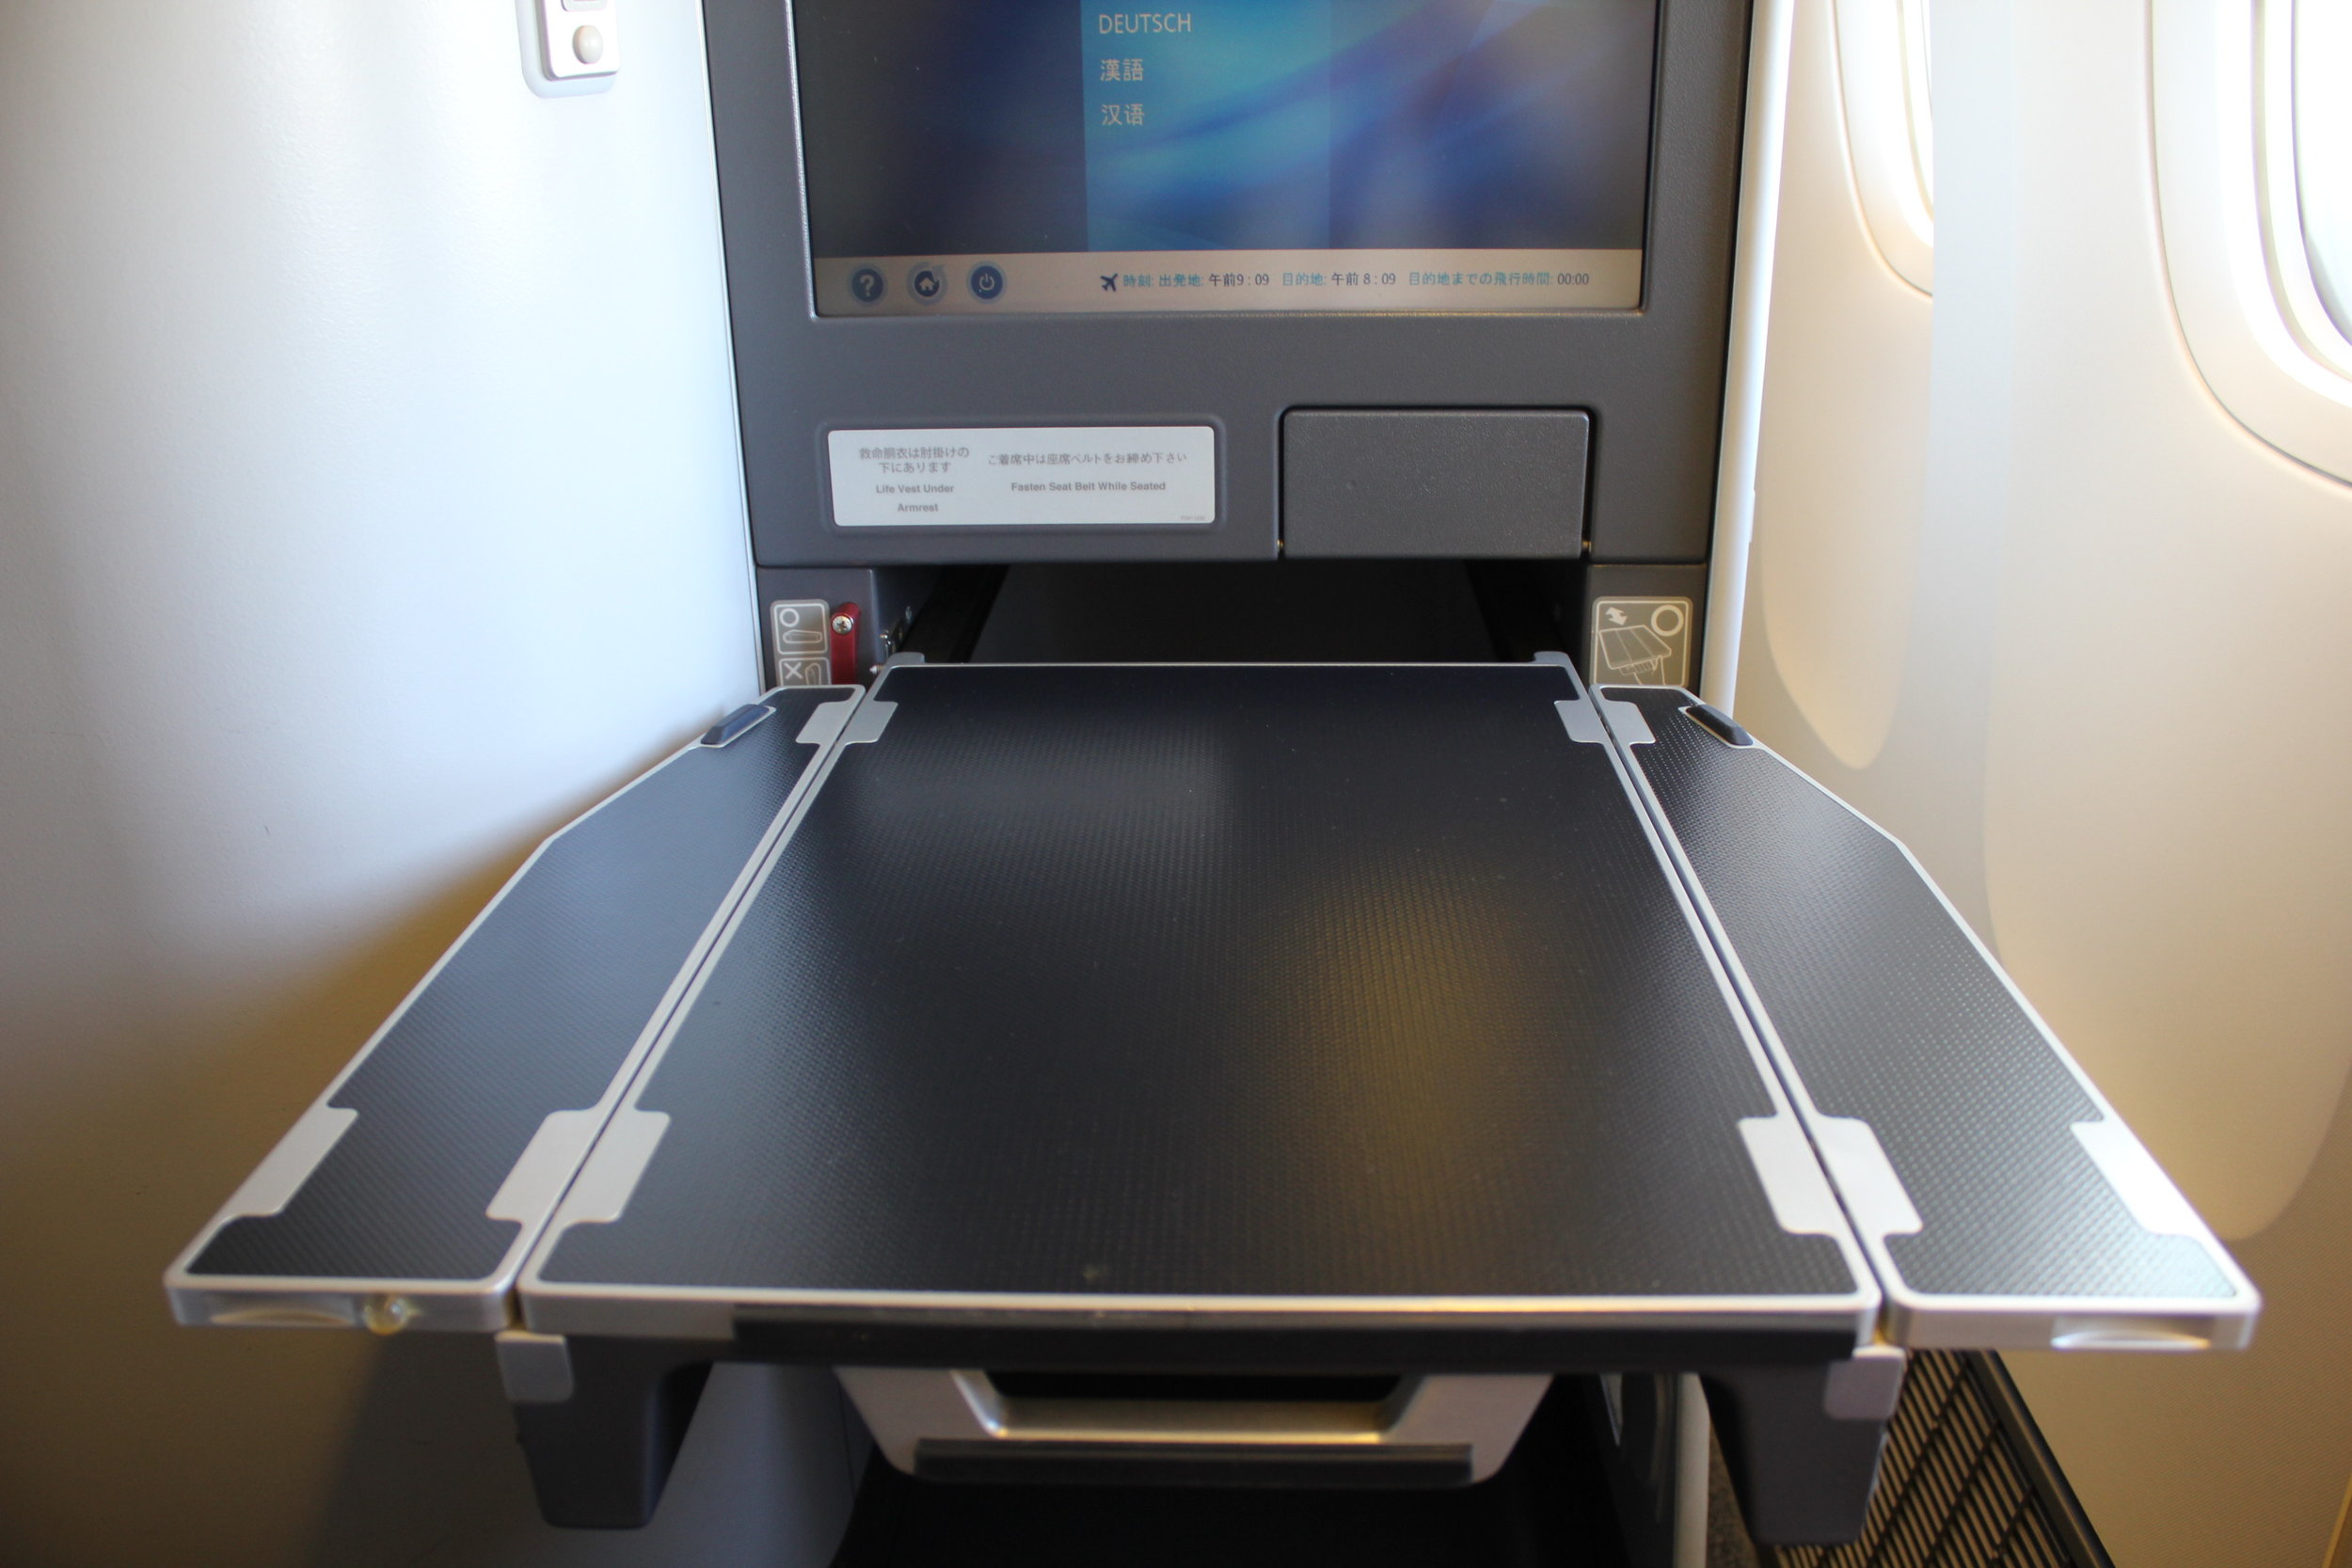 ANA 777 business class – Tray table